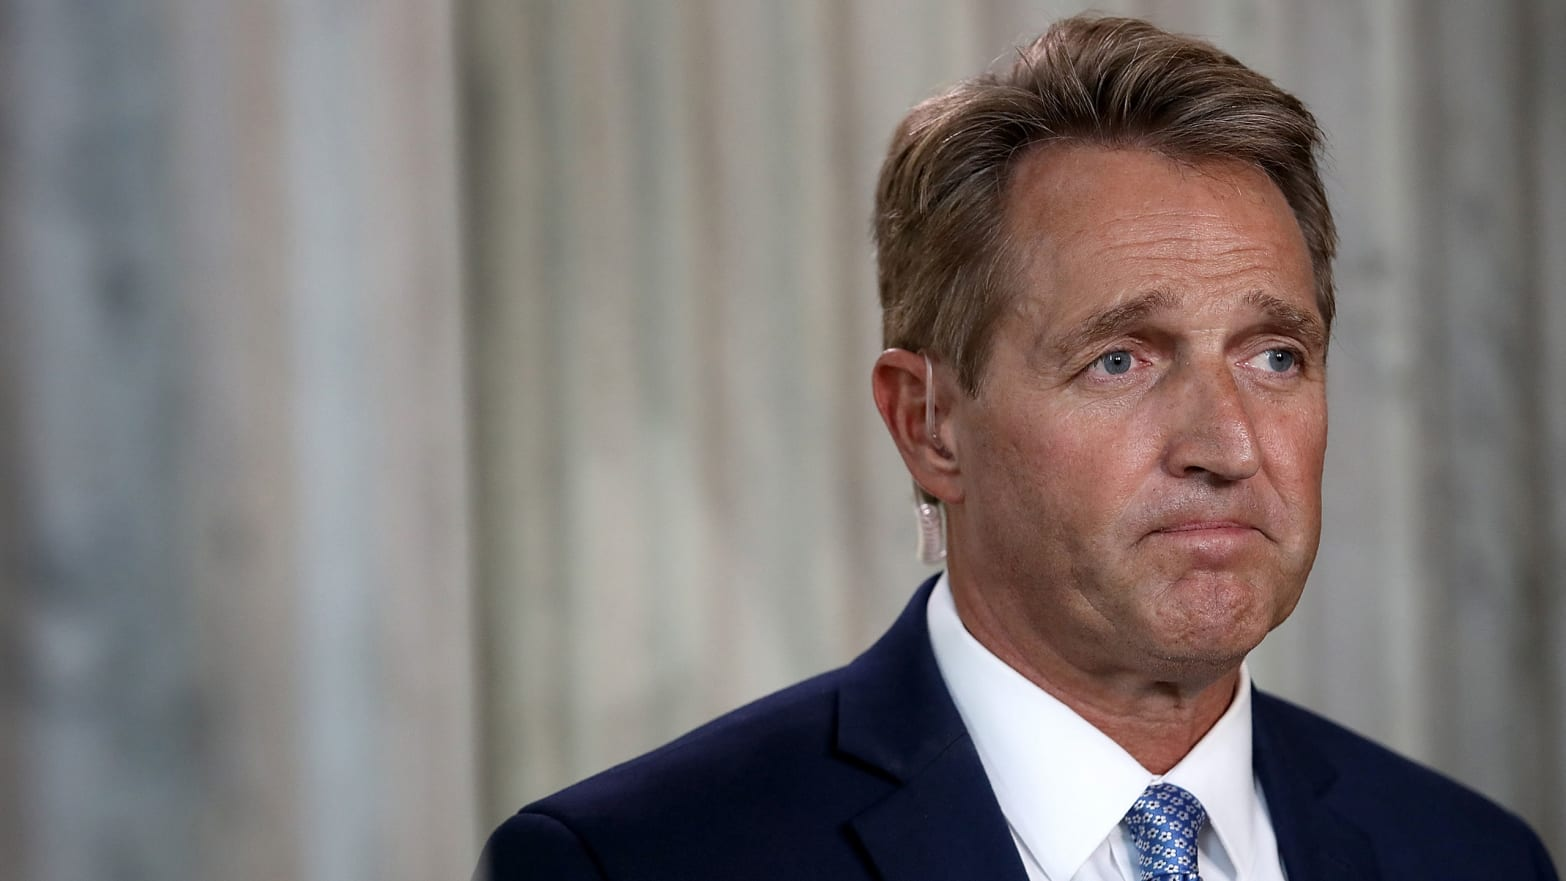 Are the Republicans the Party of Flake, or the Party of Trump?